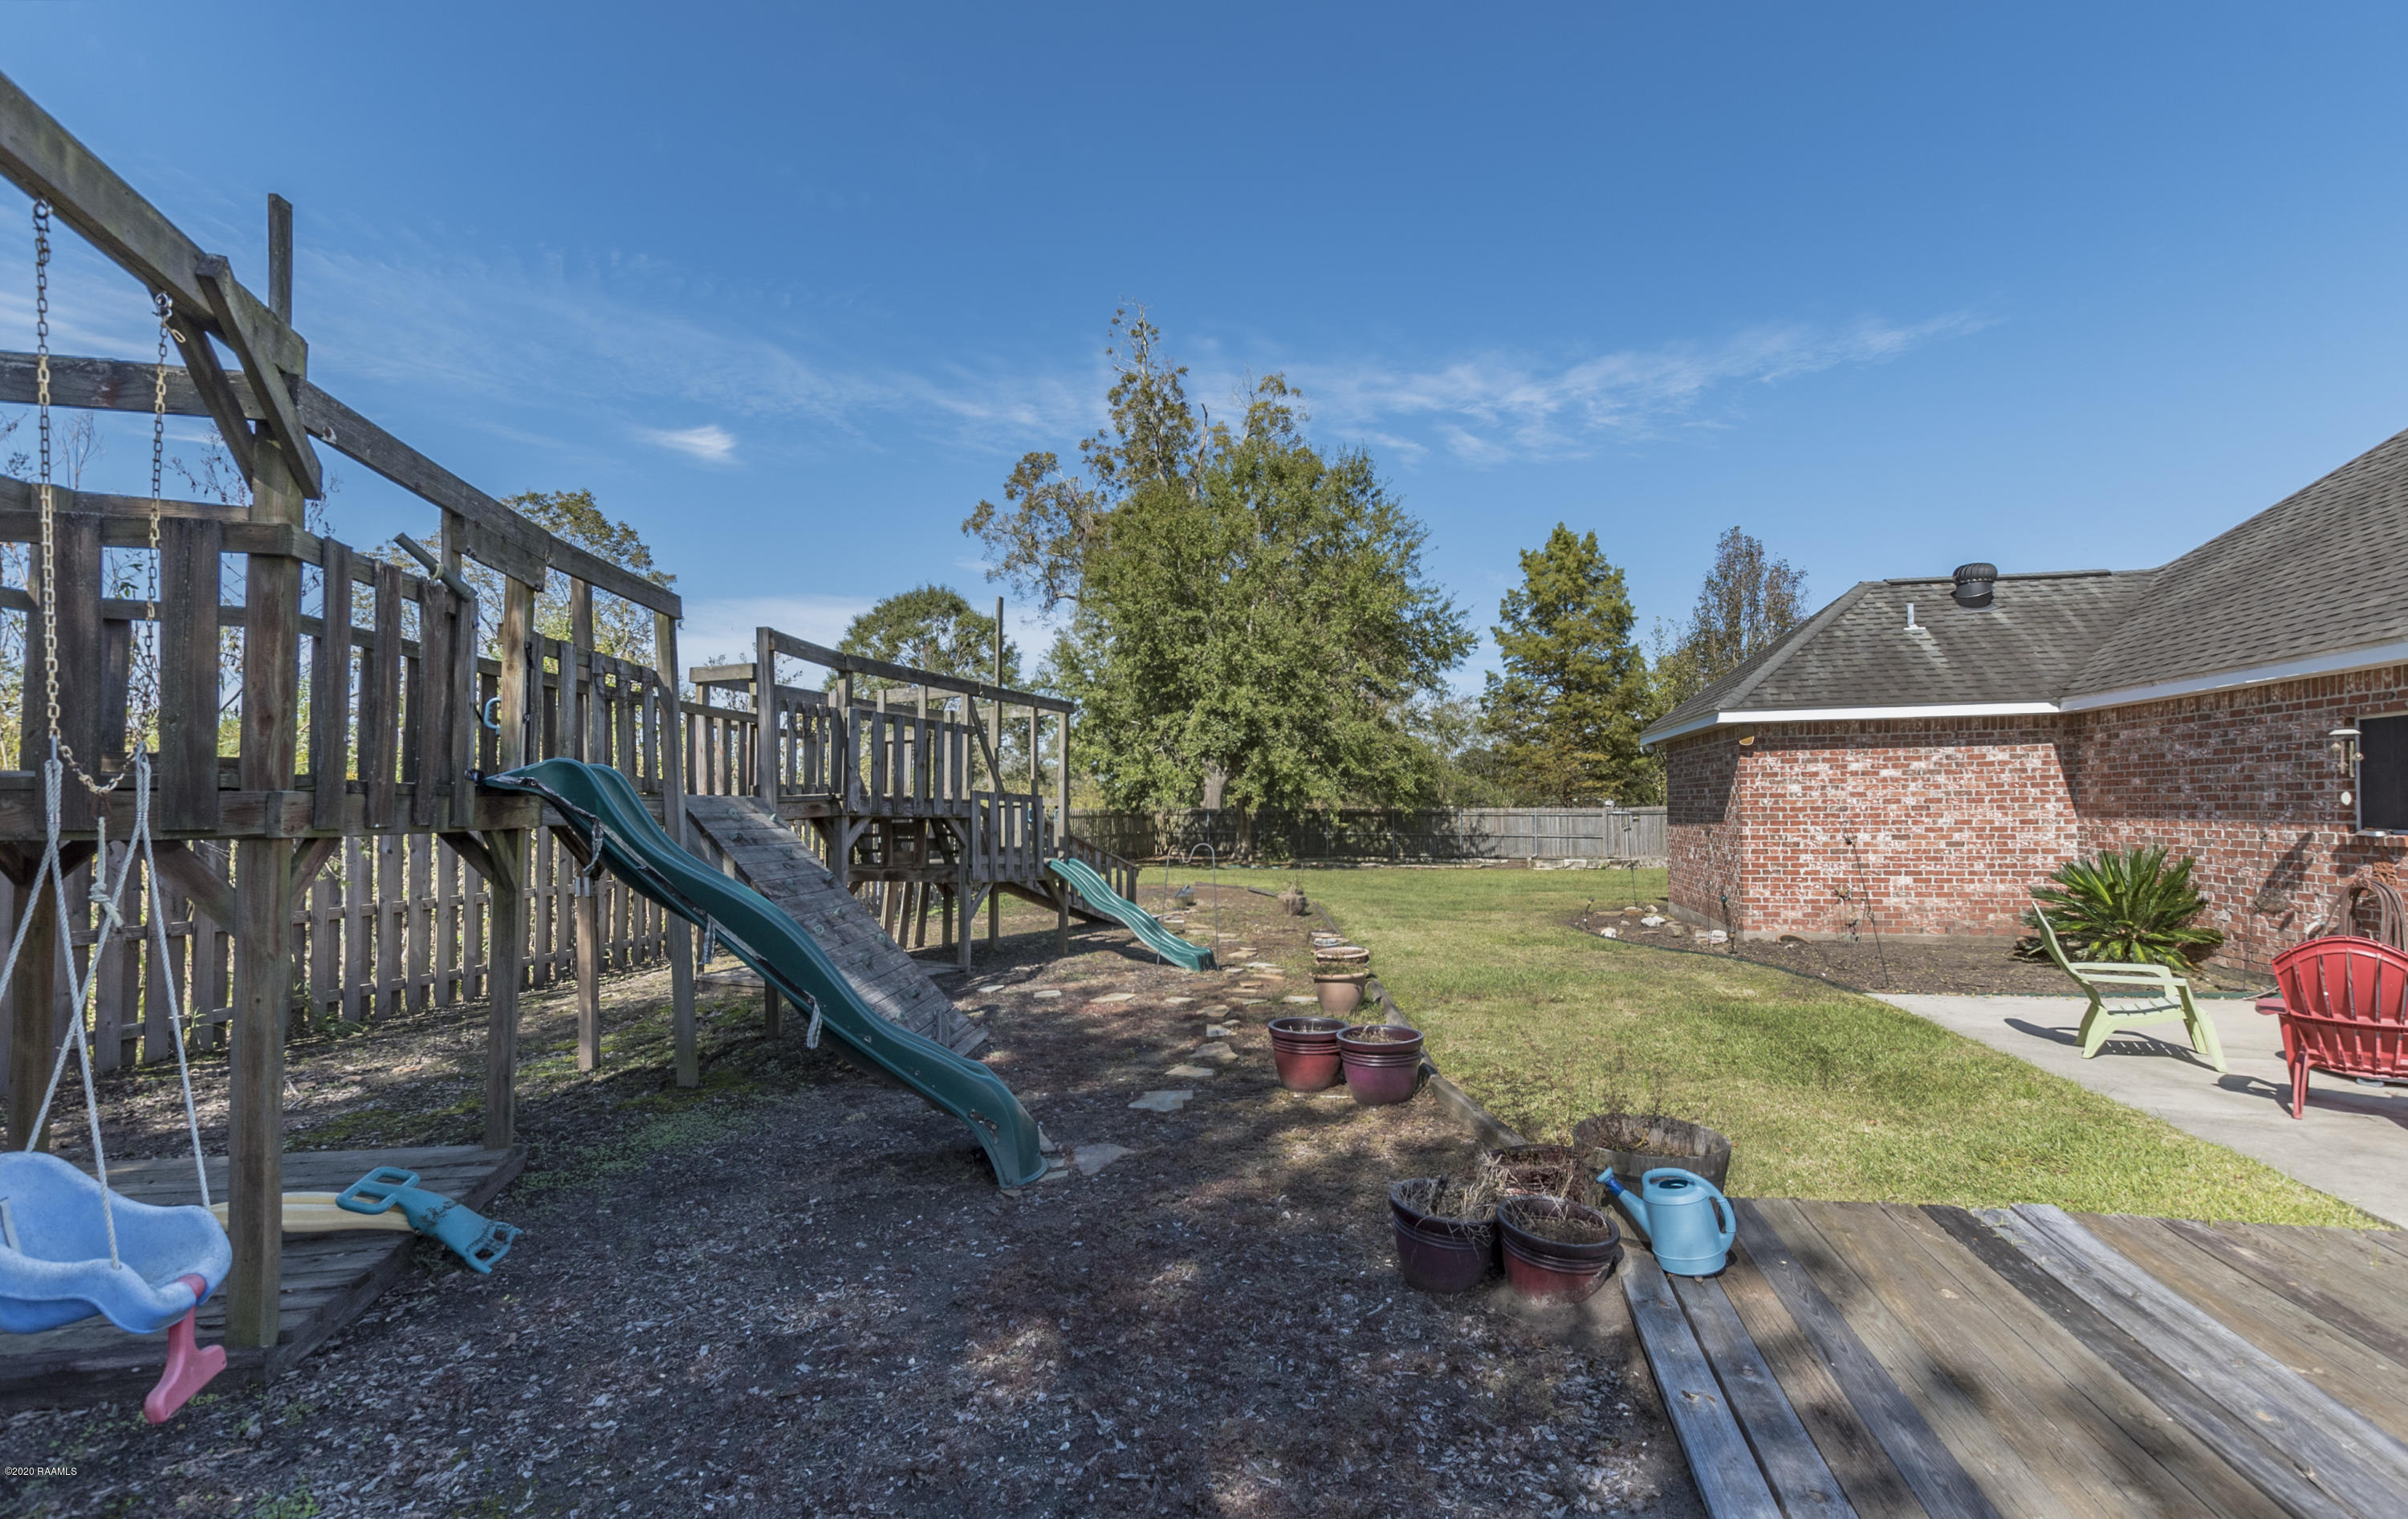 1042 Myrtle Bend, Breaux Bridge, LA 70517 Photo #37